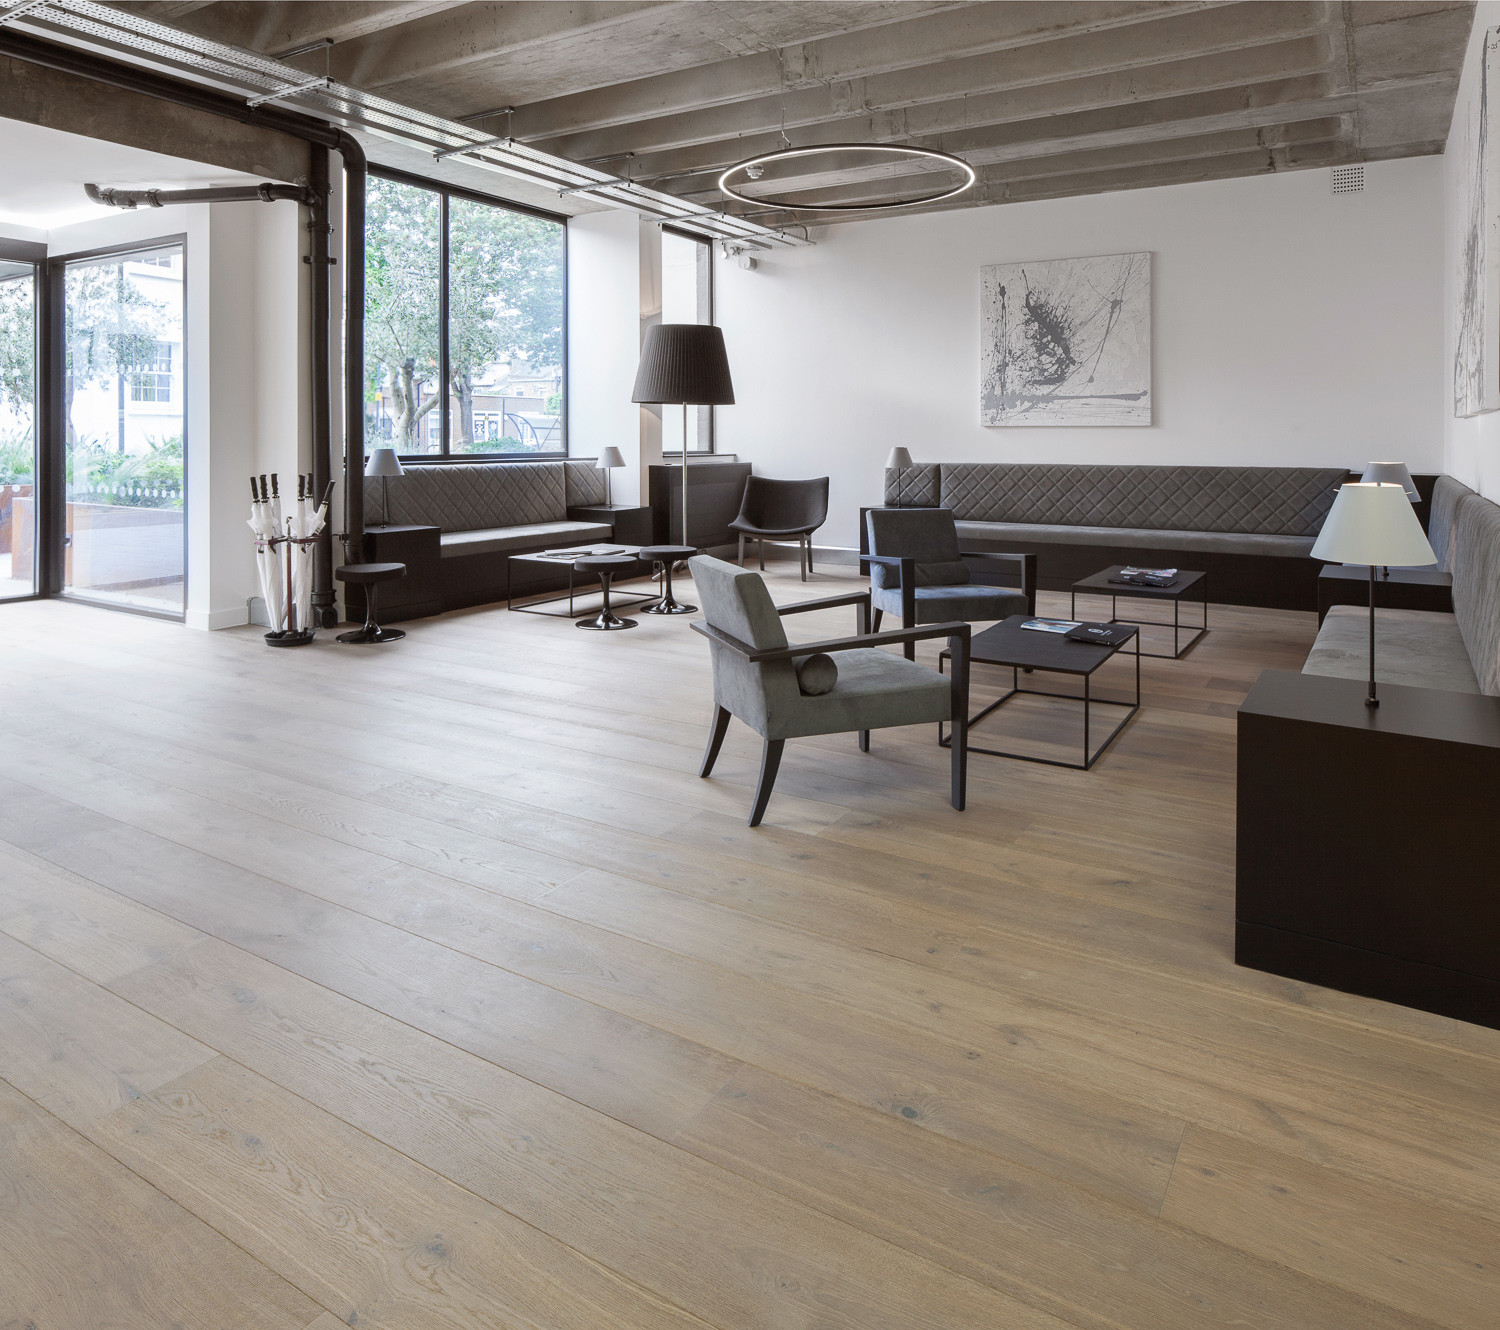 hardwood floor tile inlay of blog archives the new reclaimed flooring companythe new with regard to the report indicated that 82 of workers who were employed in places with eight or more wood surfaces had higher personal productivity mood concentration